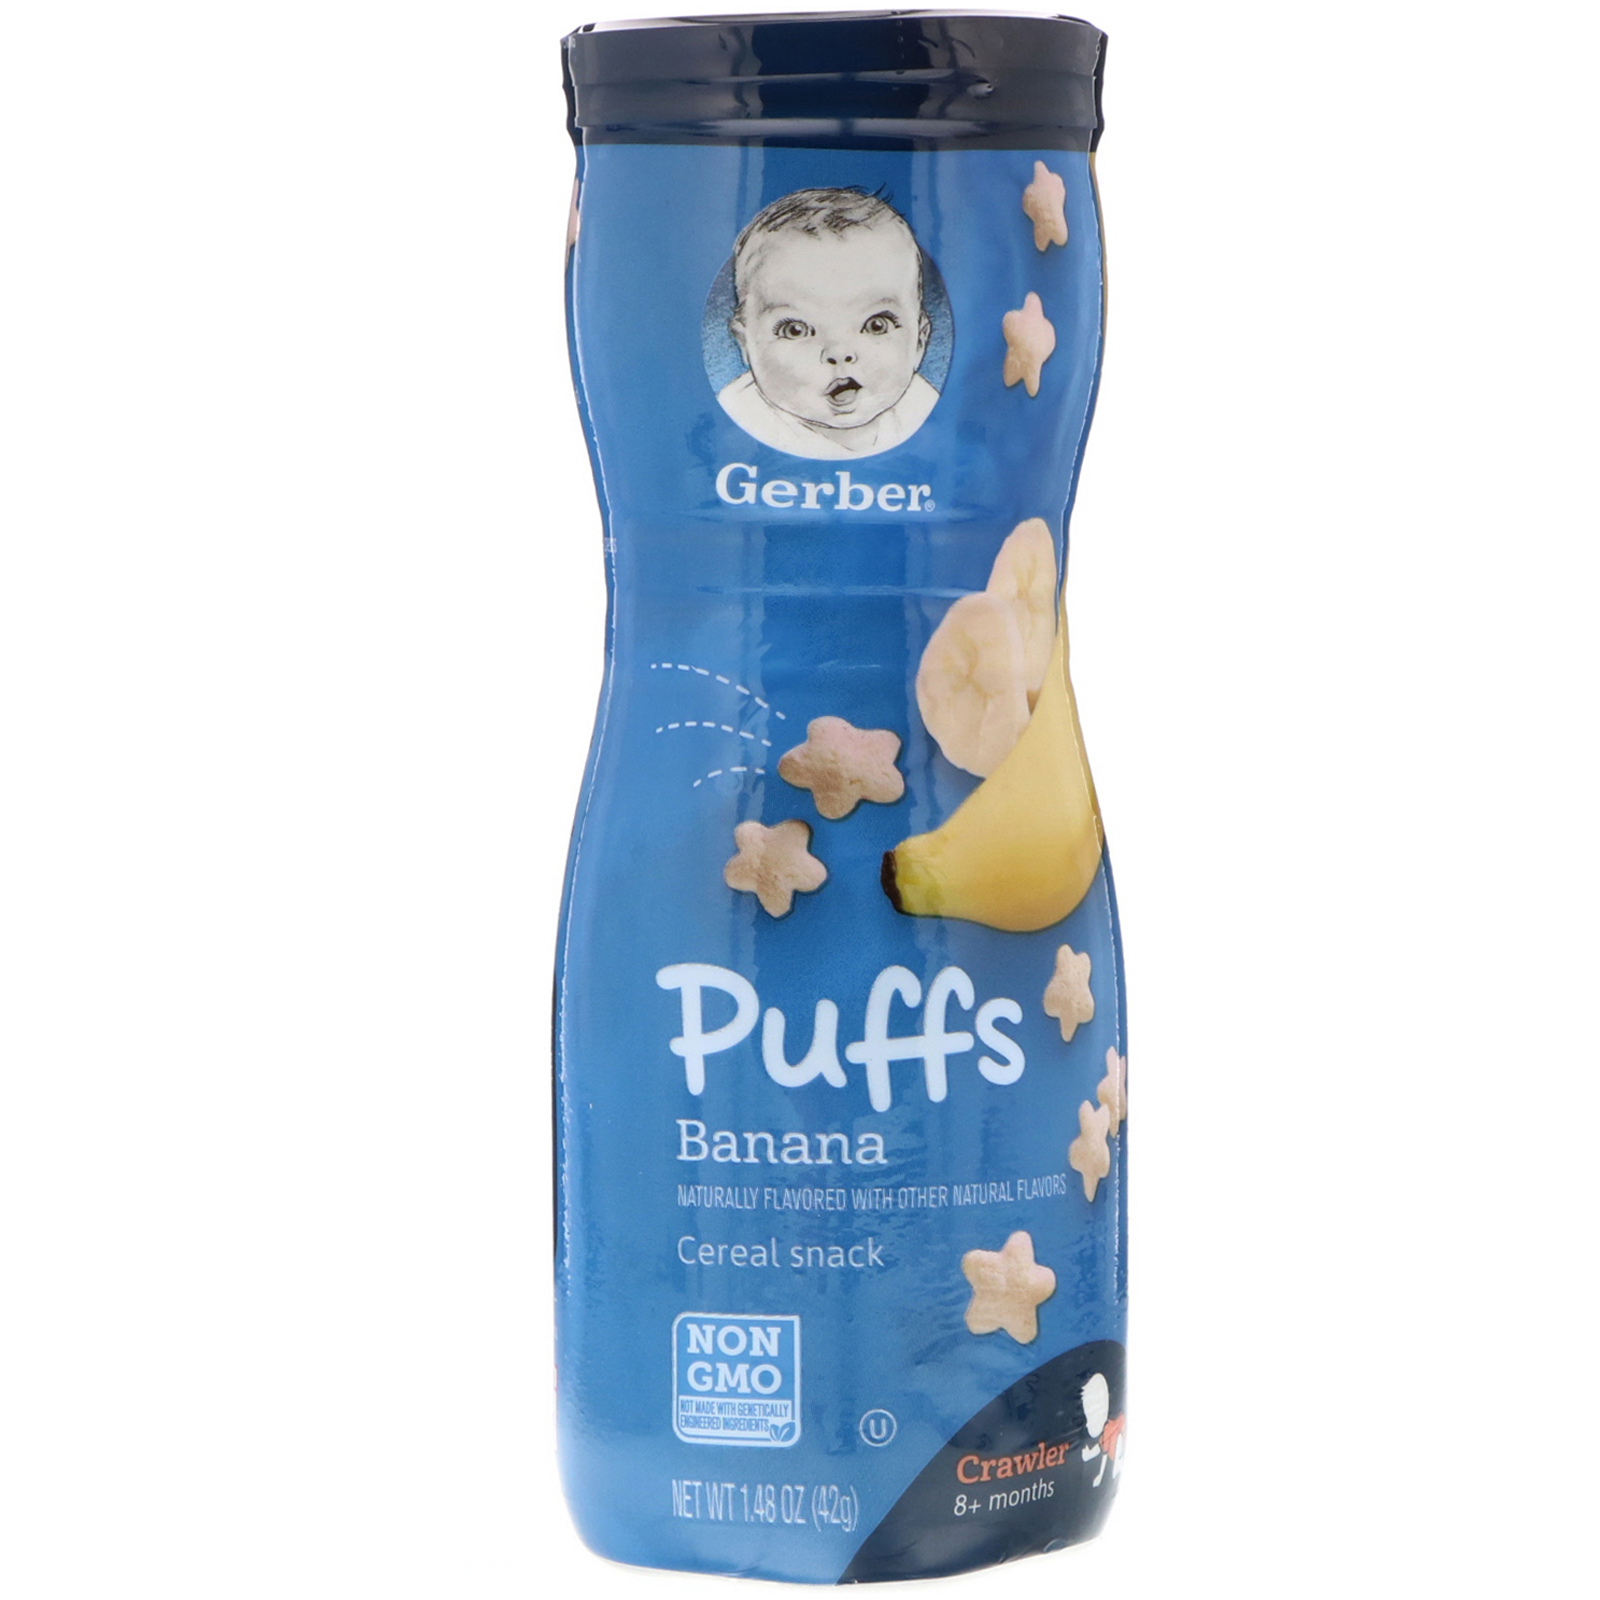 Gerber, Puffs Cereal Snack, 8+ Months